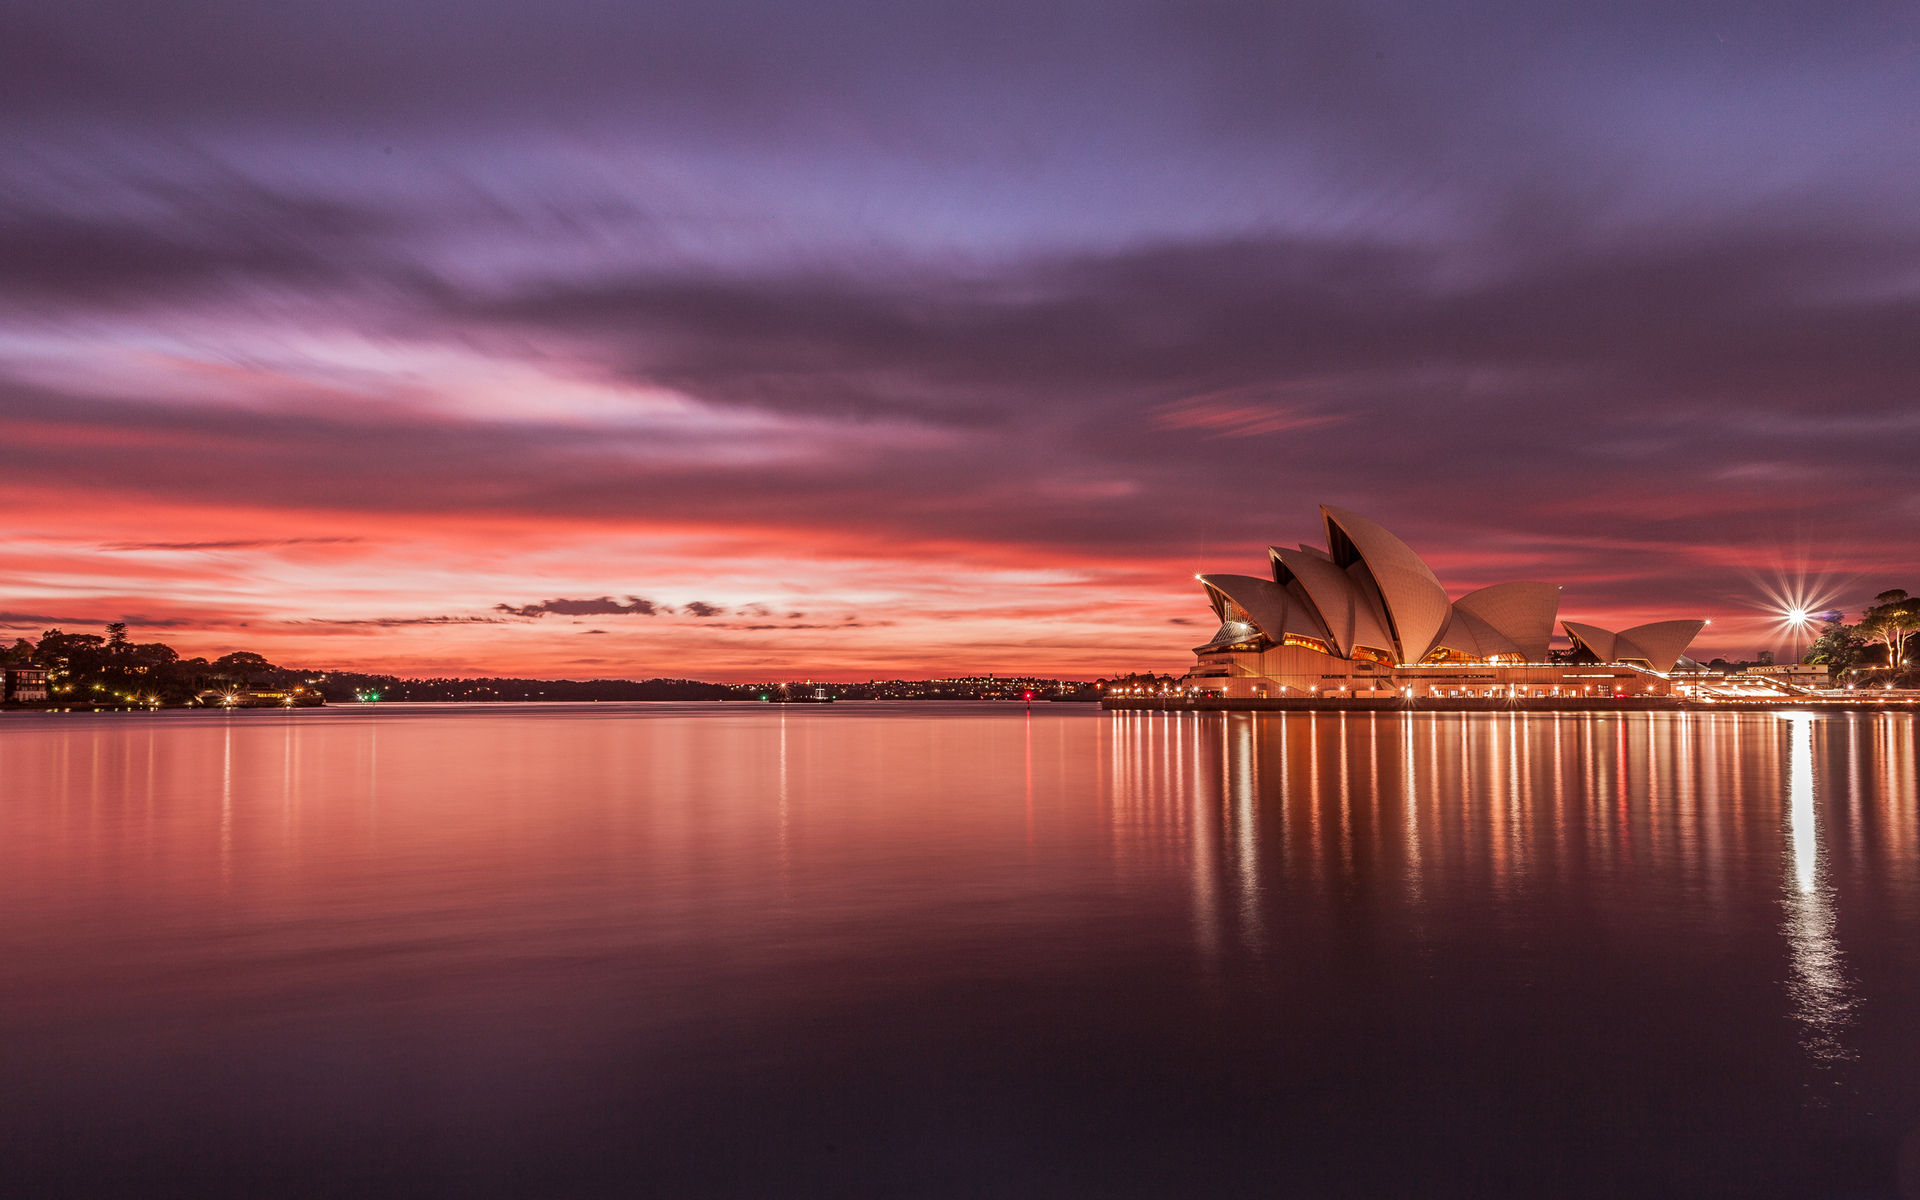 images of australia Capturing australia's rich beauty in a photograph can be a daunting task the sheer magnitude of the landscapes is awe-inspiring, yet the staggering beauty and bold hues of this sunburned land shine brightly for the lens.